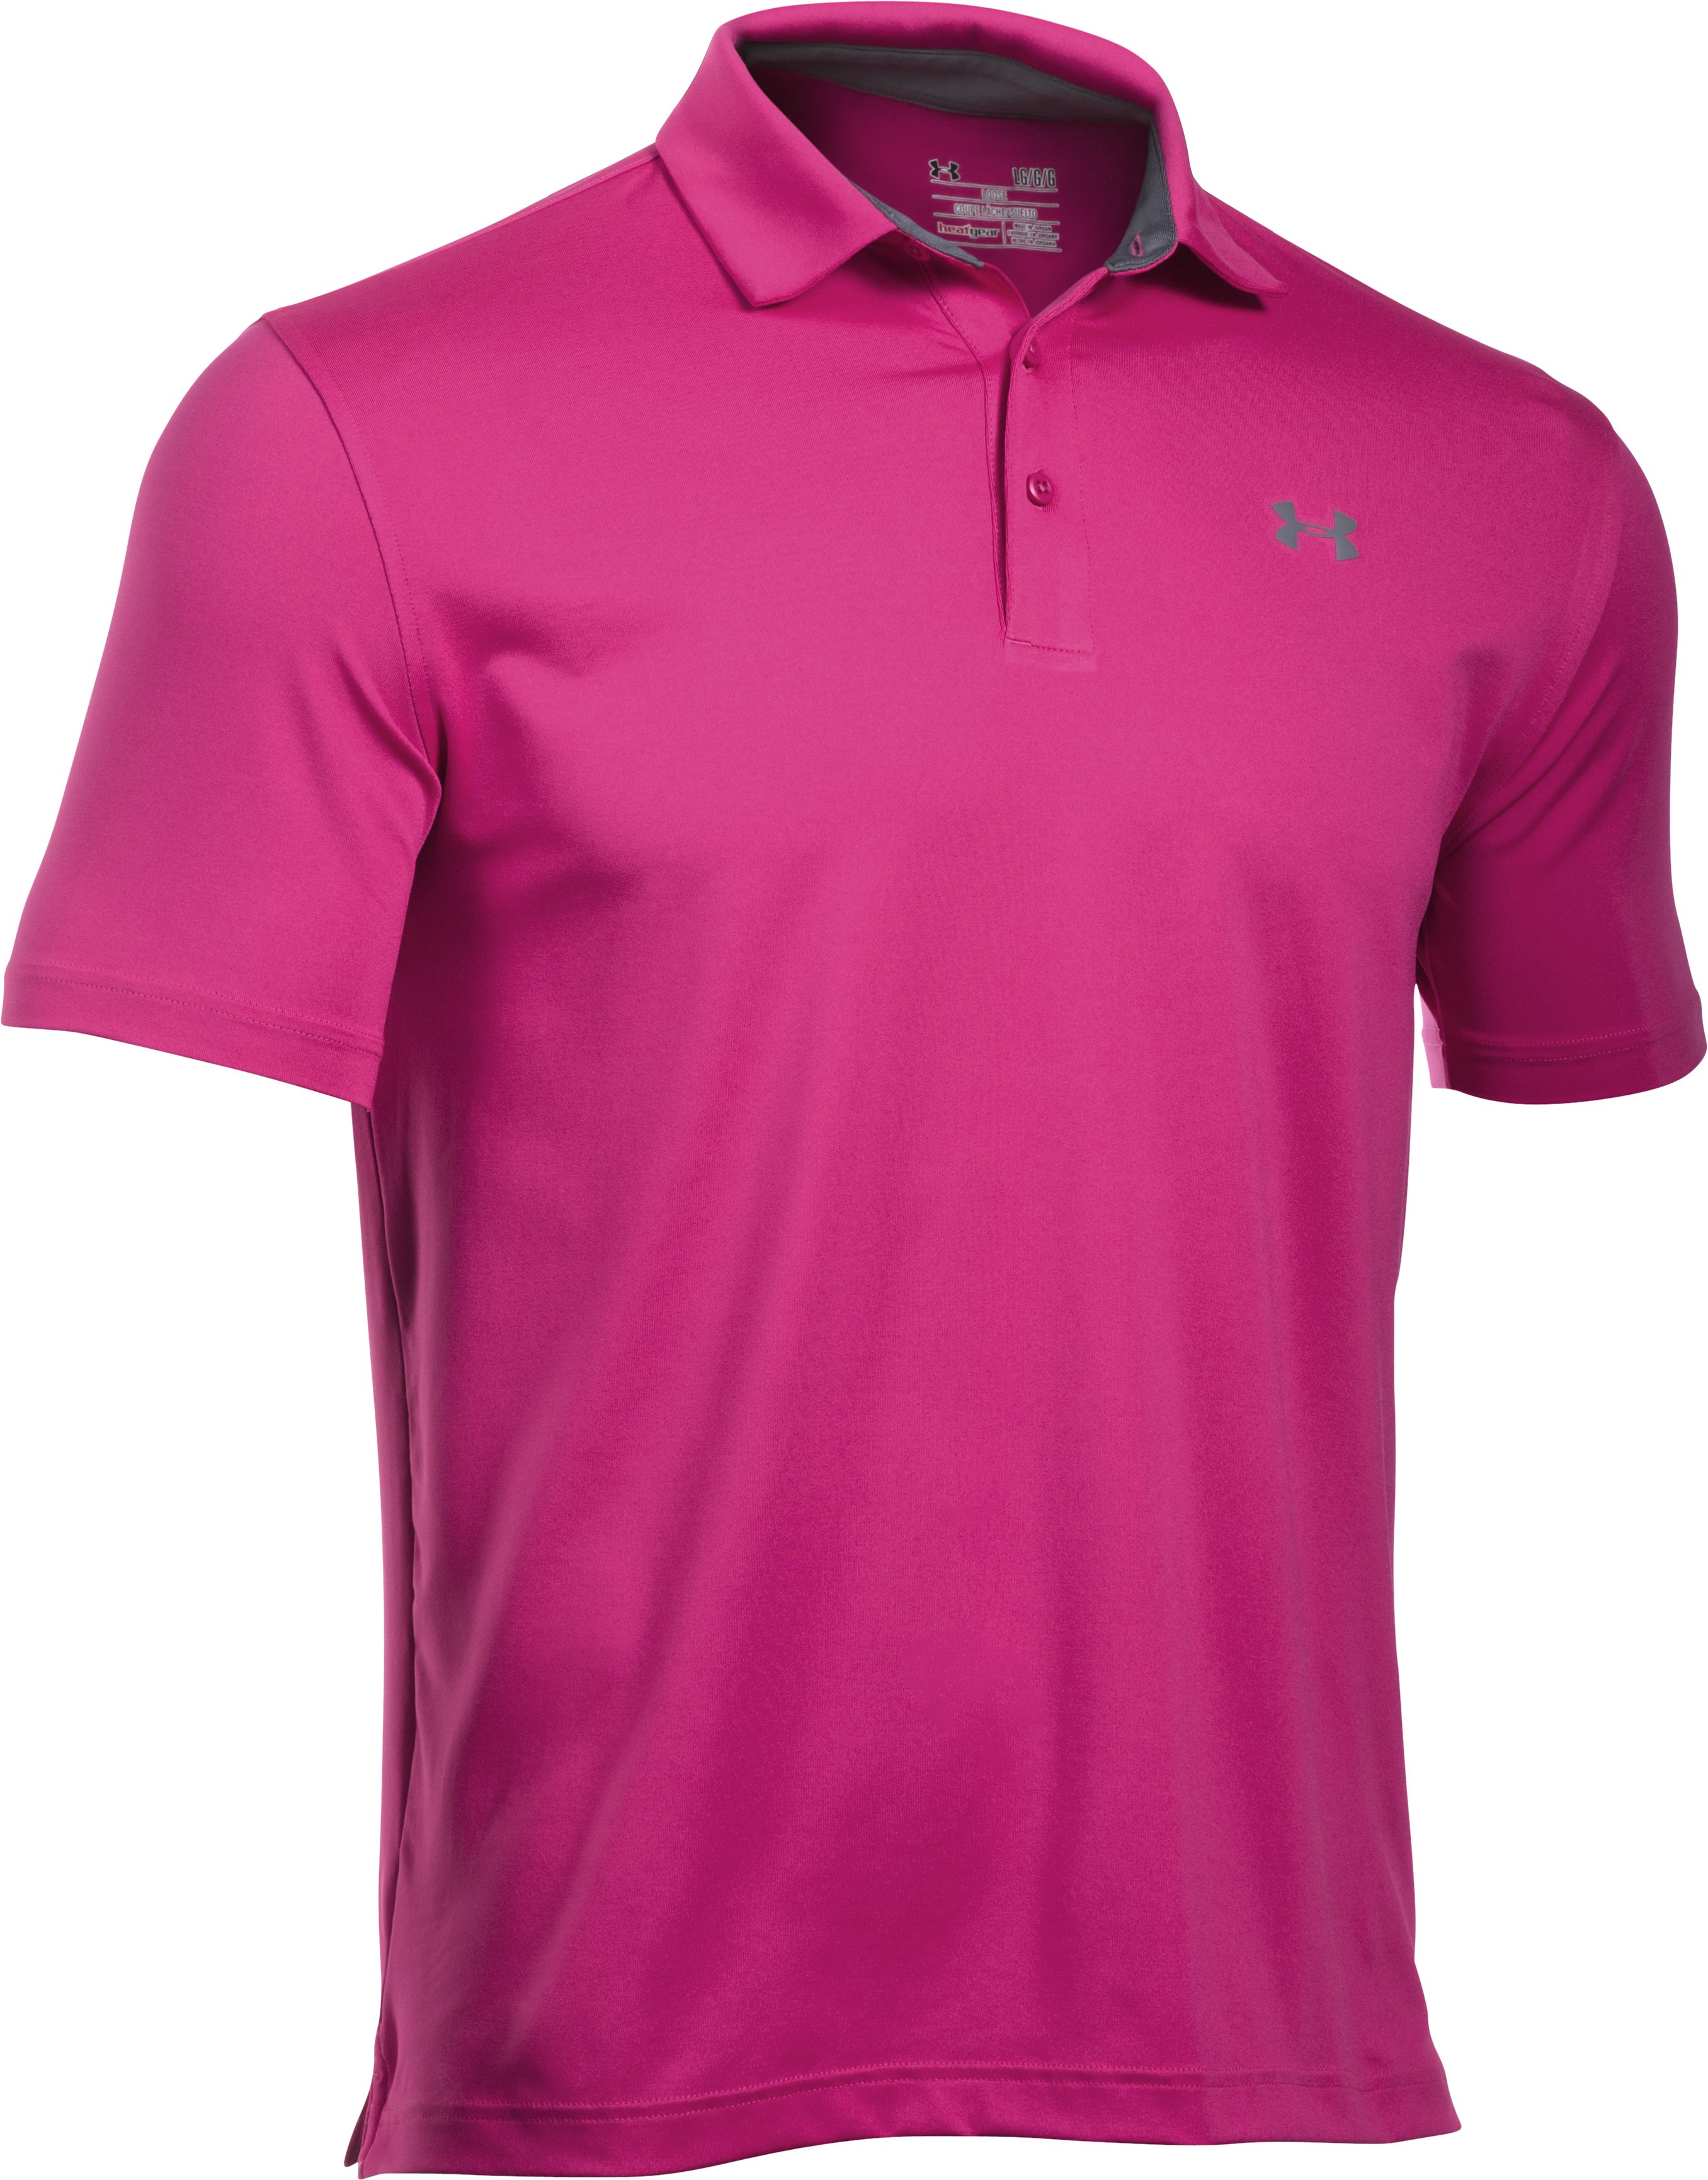 Men's UA Playoff Polo — Special Edition, Tropic Pink